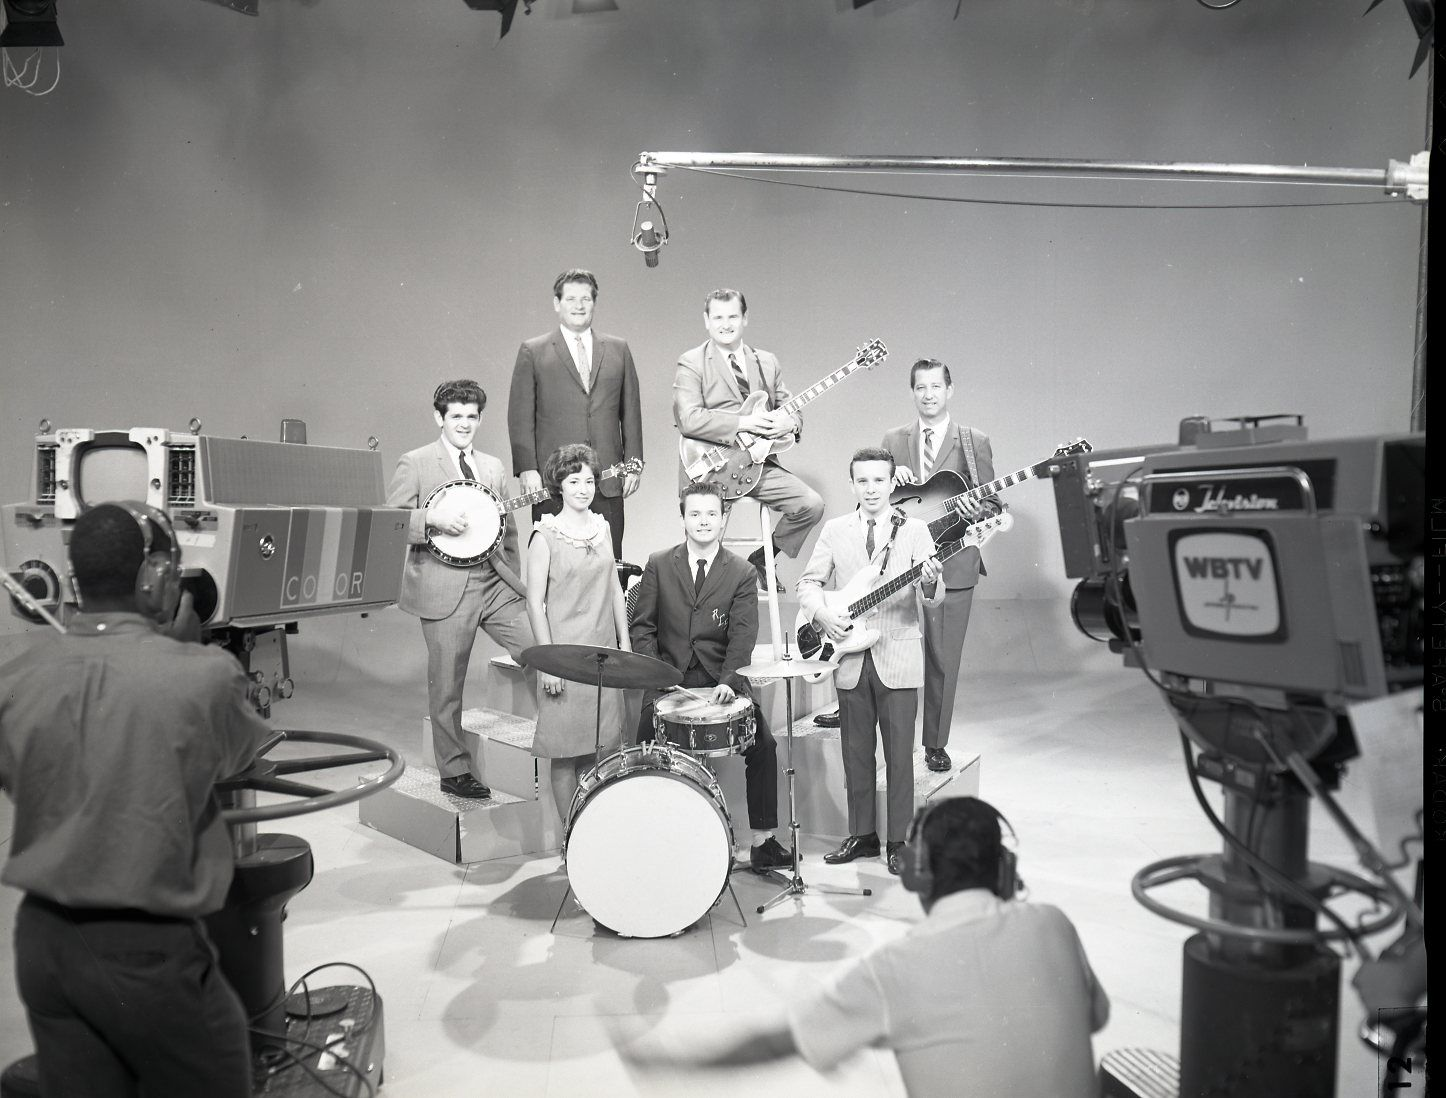 Cast of The Arthur Smith Show, circa 1960s, filmed at WBTV in